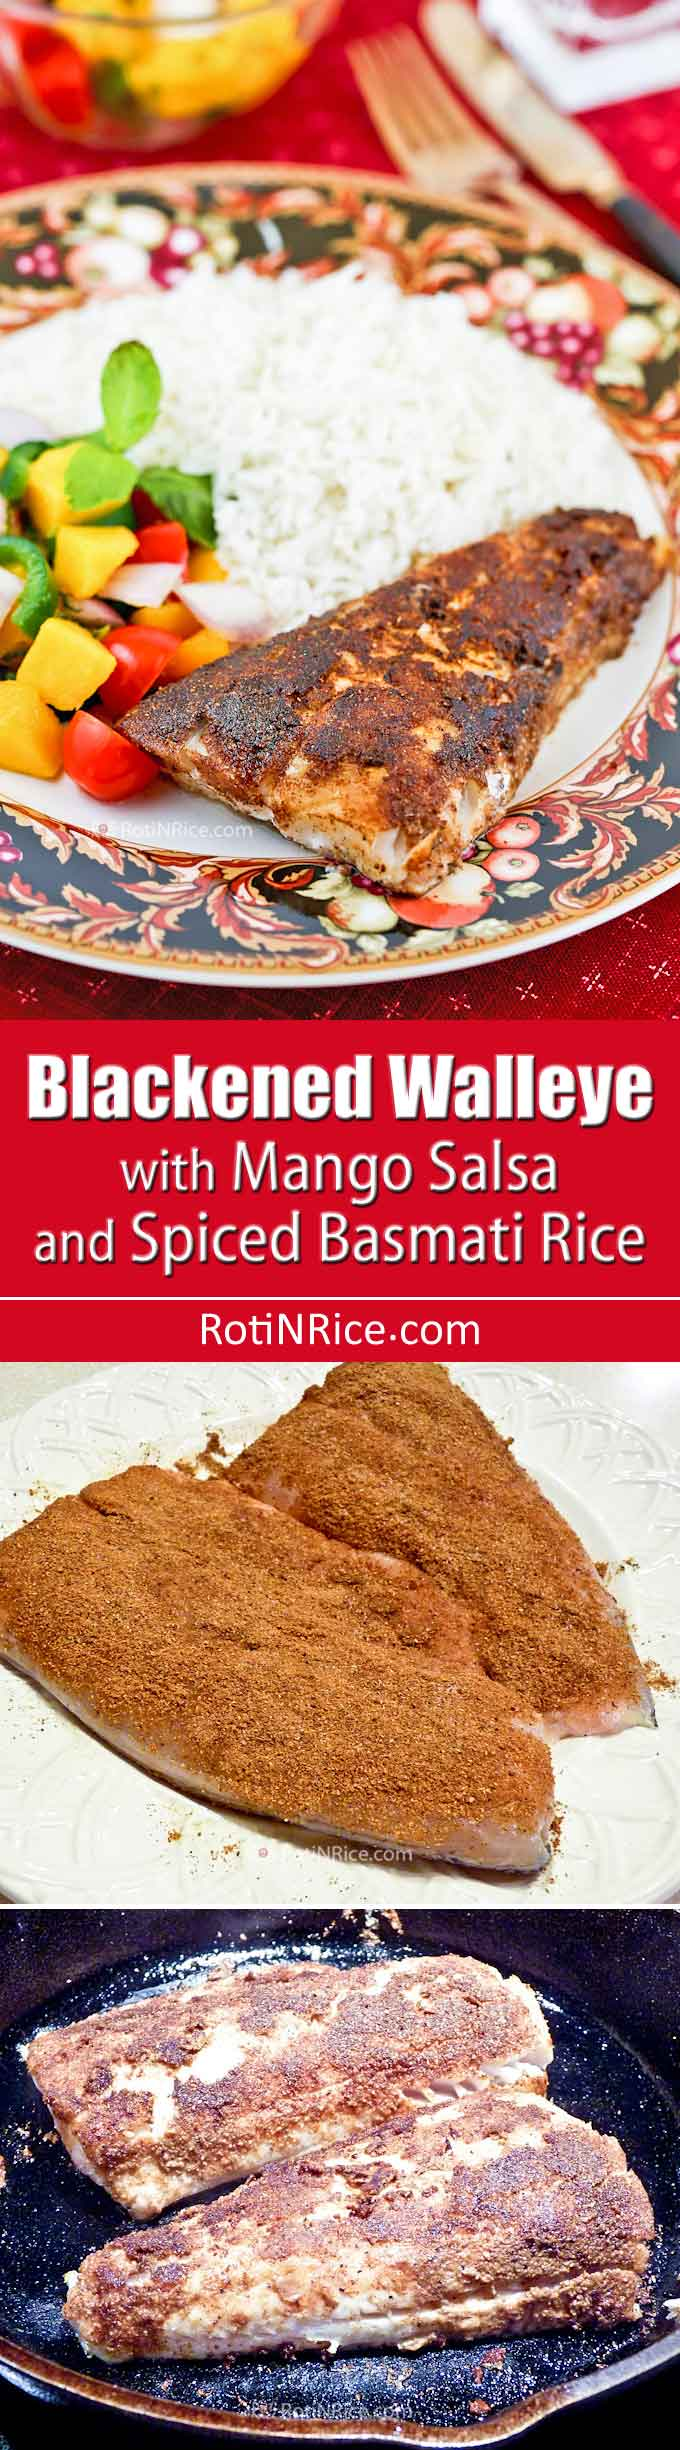 Enjoy this complete meal of Blackened Walleye served with a luscious Mango Salsa and fluffy Spiced Basmati Rice. Only Only 45 minutes total to prepare. | RotiNRice.com